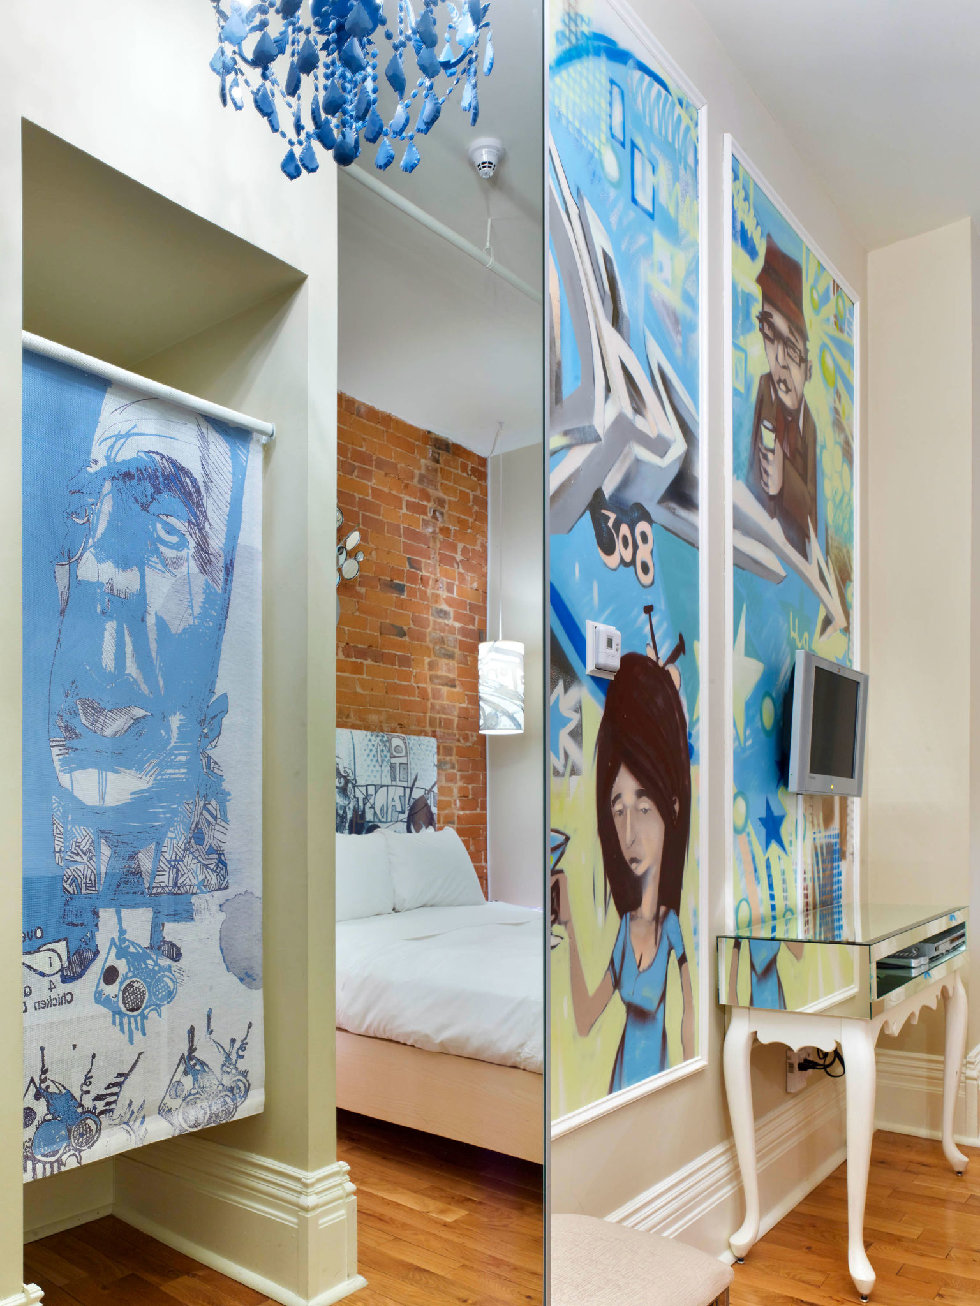 An artist-designed room at Toronto's Gladstone Hotel